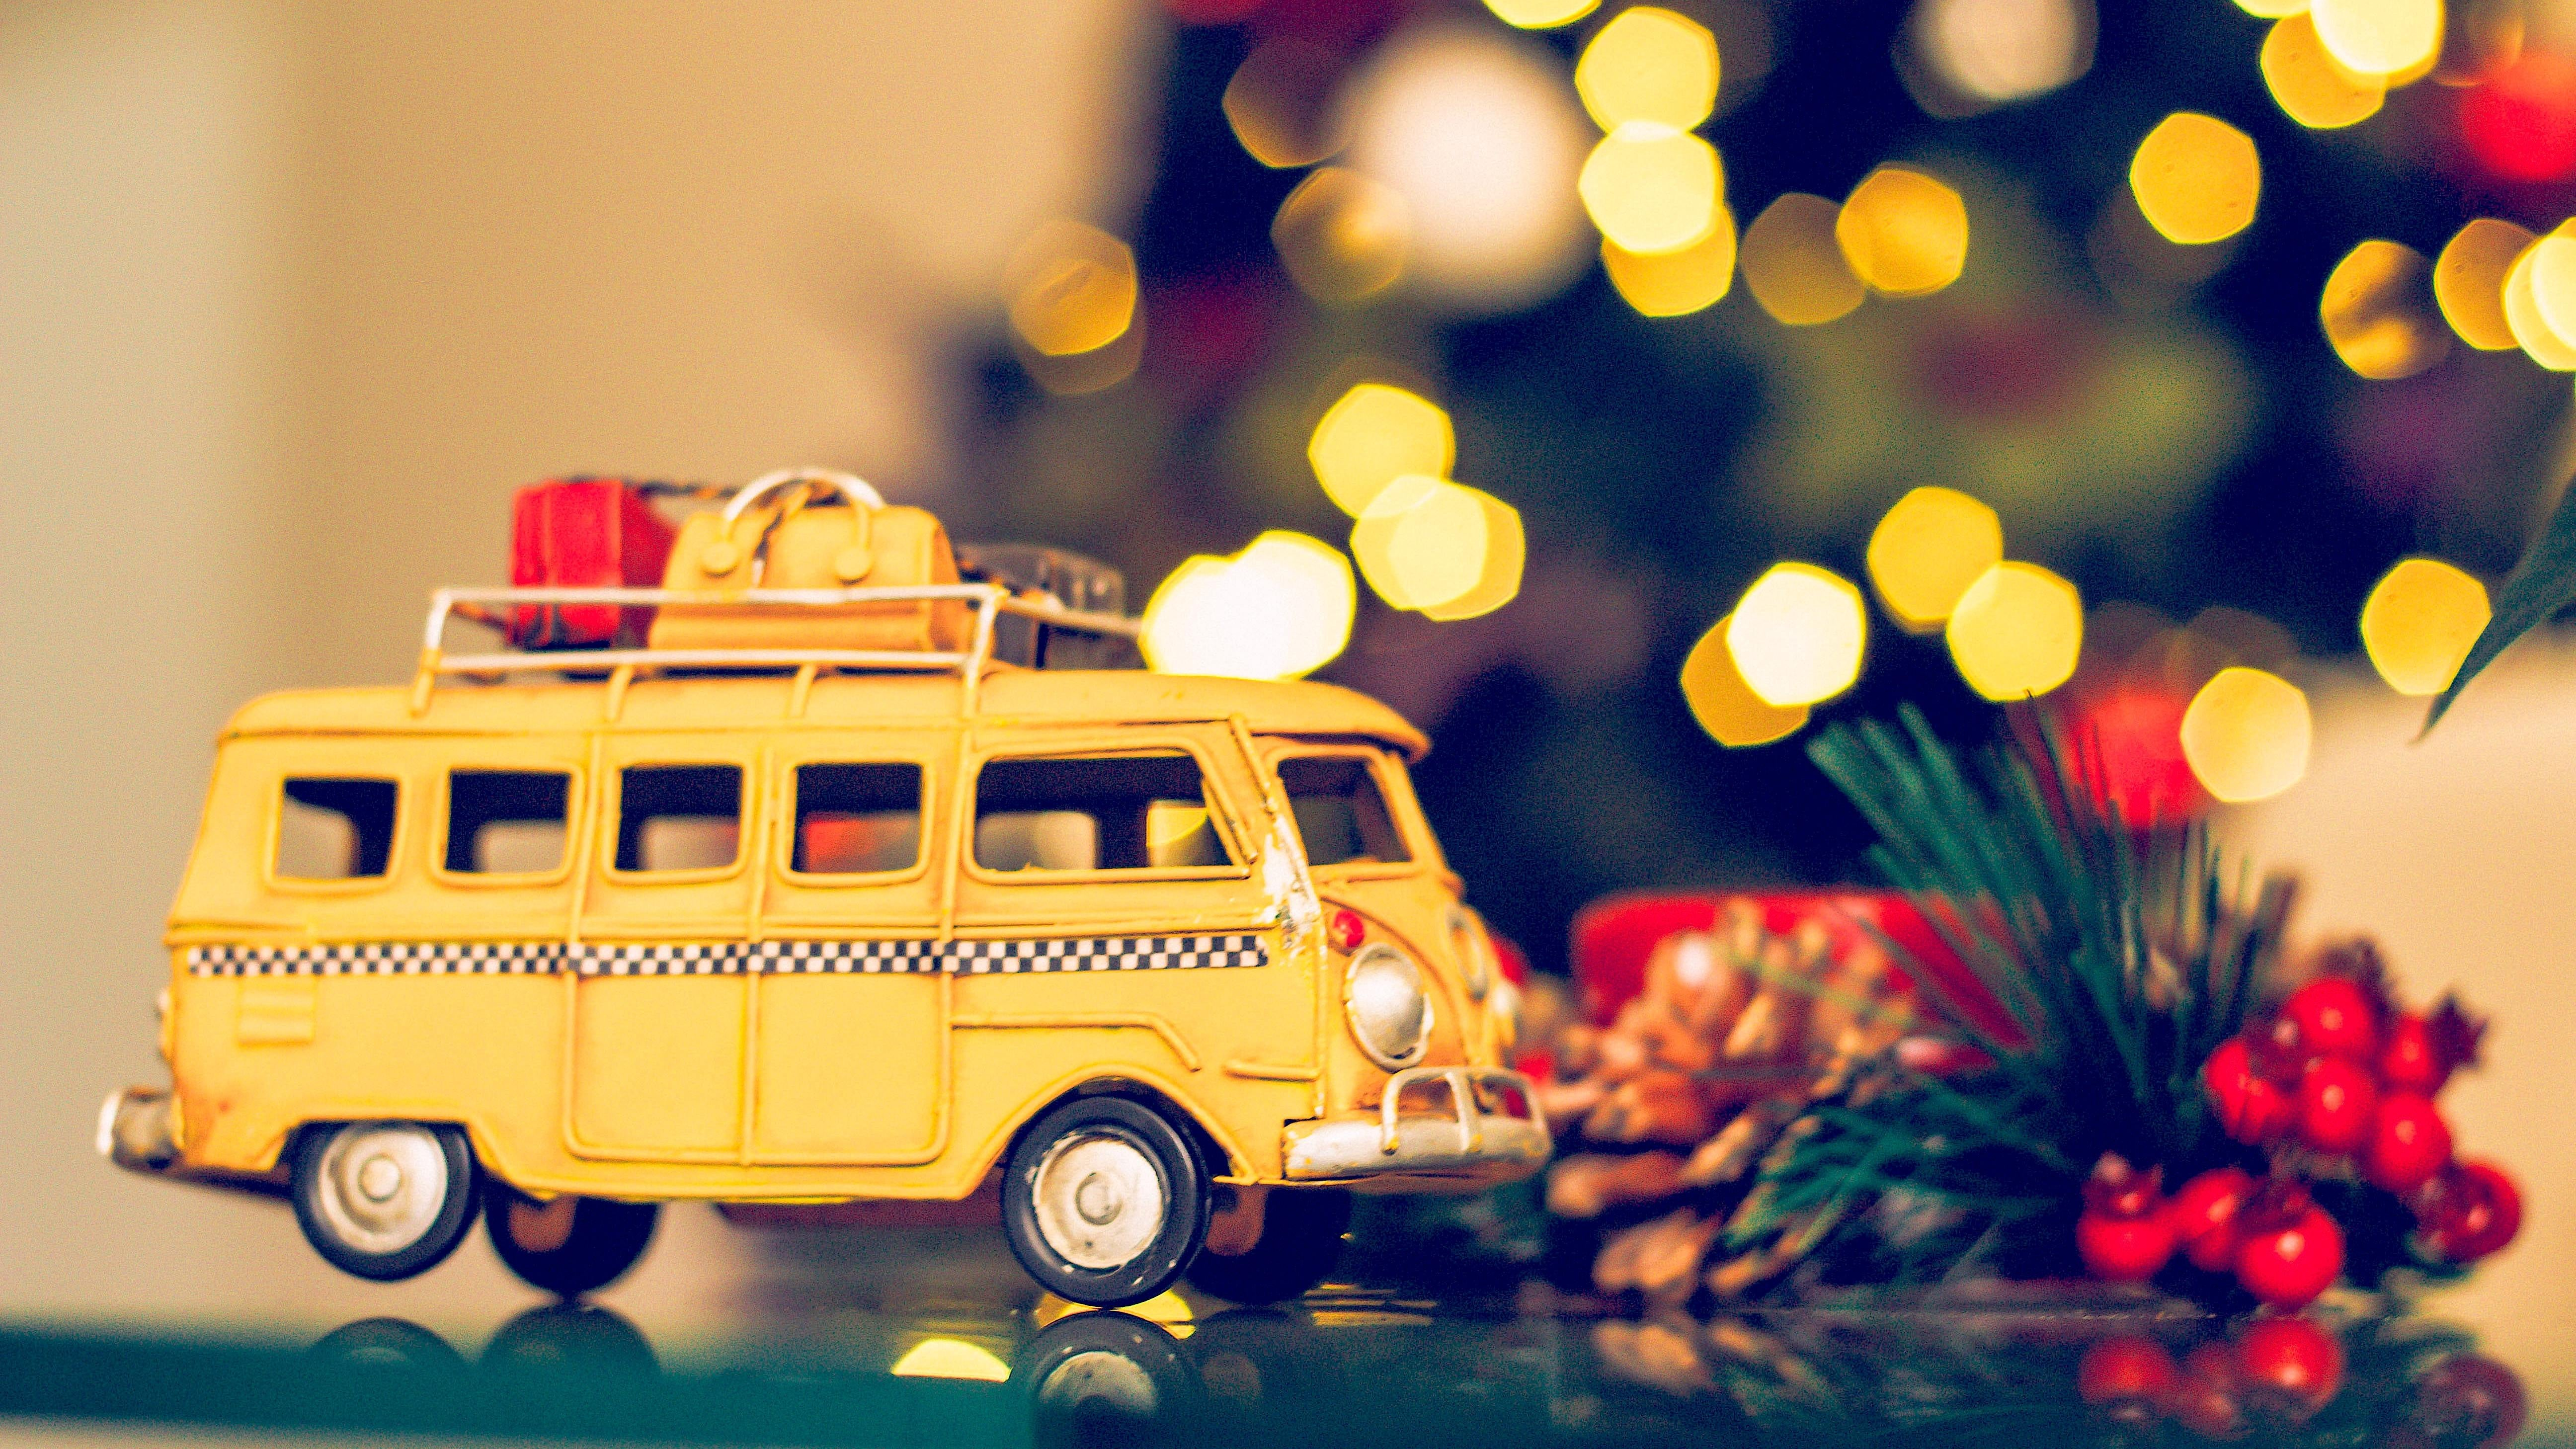 Leave Old Toys Under The Tree For Santa To Deliver To Other Kids